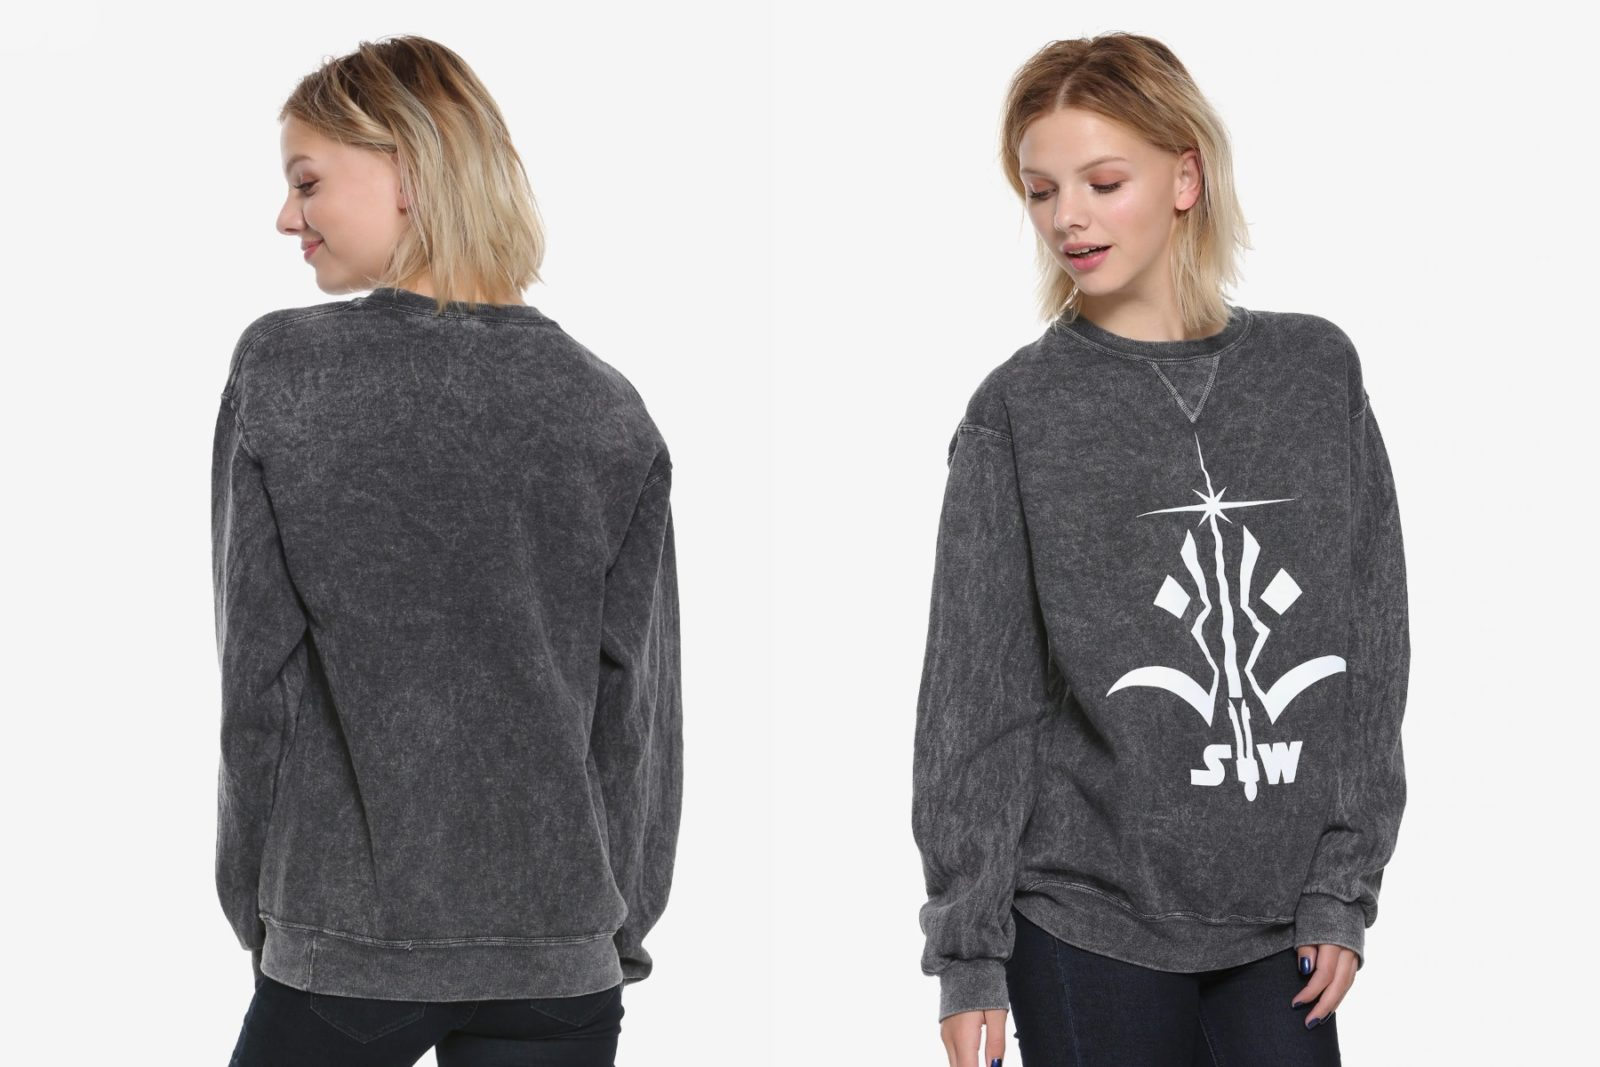 Our Universe The Clone Wars Logo Sweatshirt